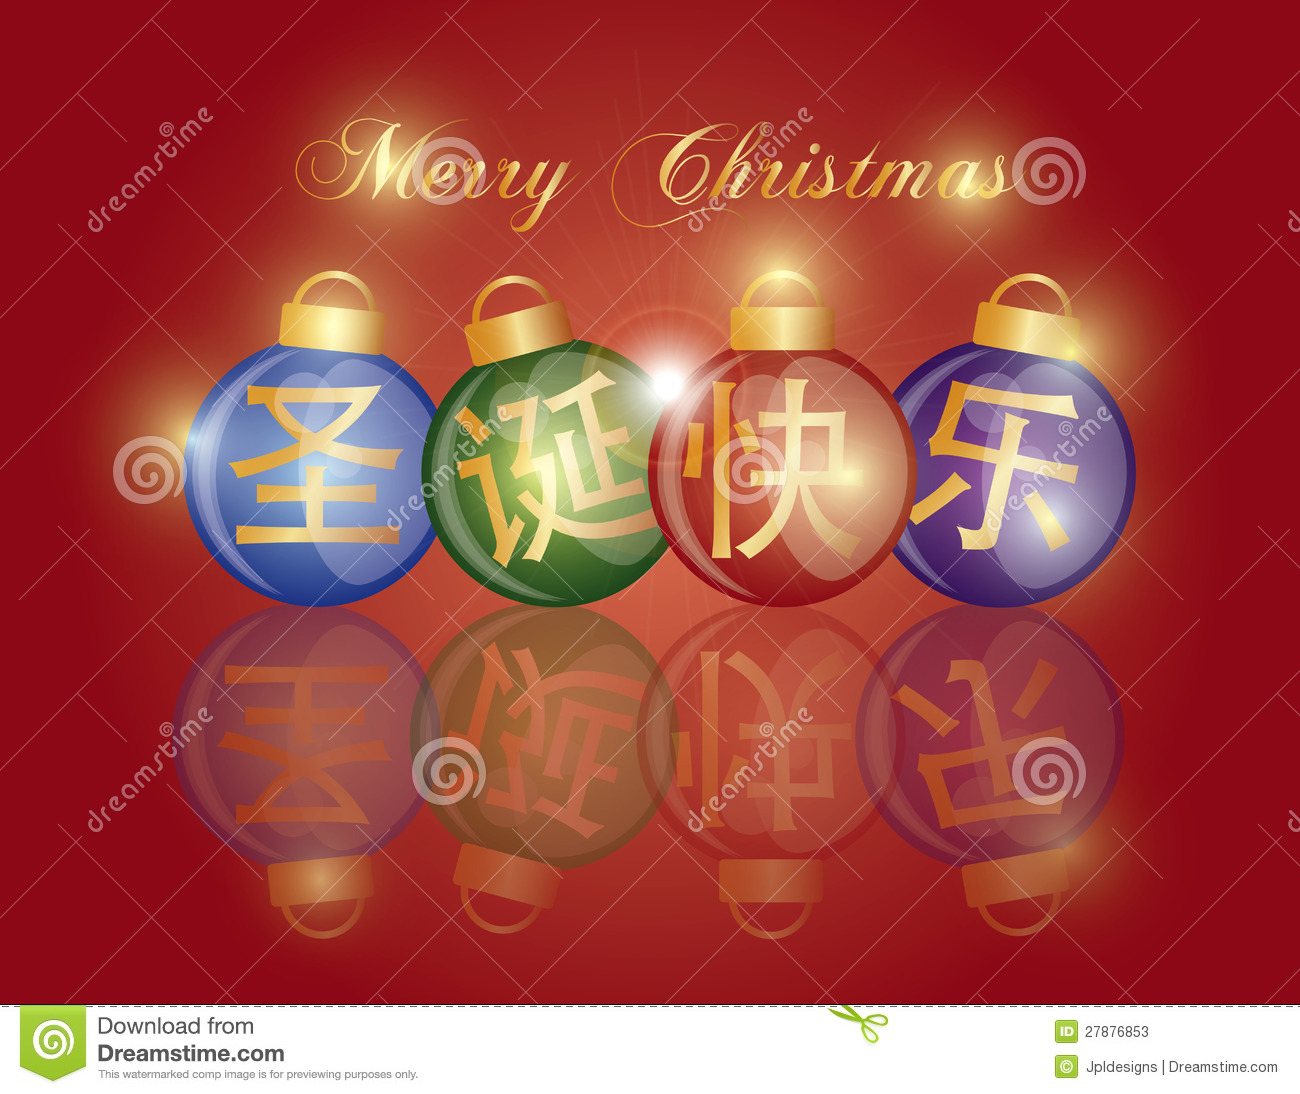 how to say merry christmas in chinese audio